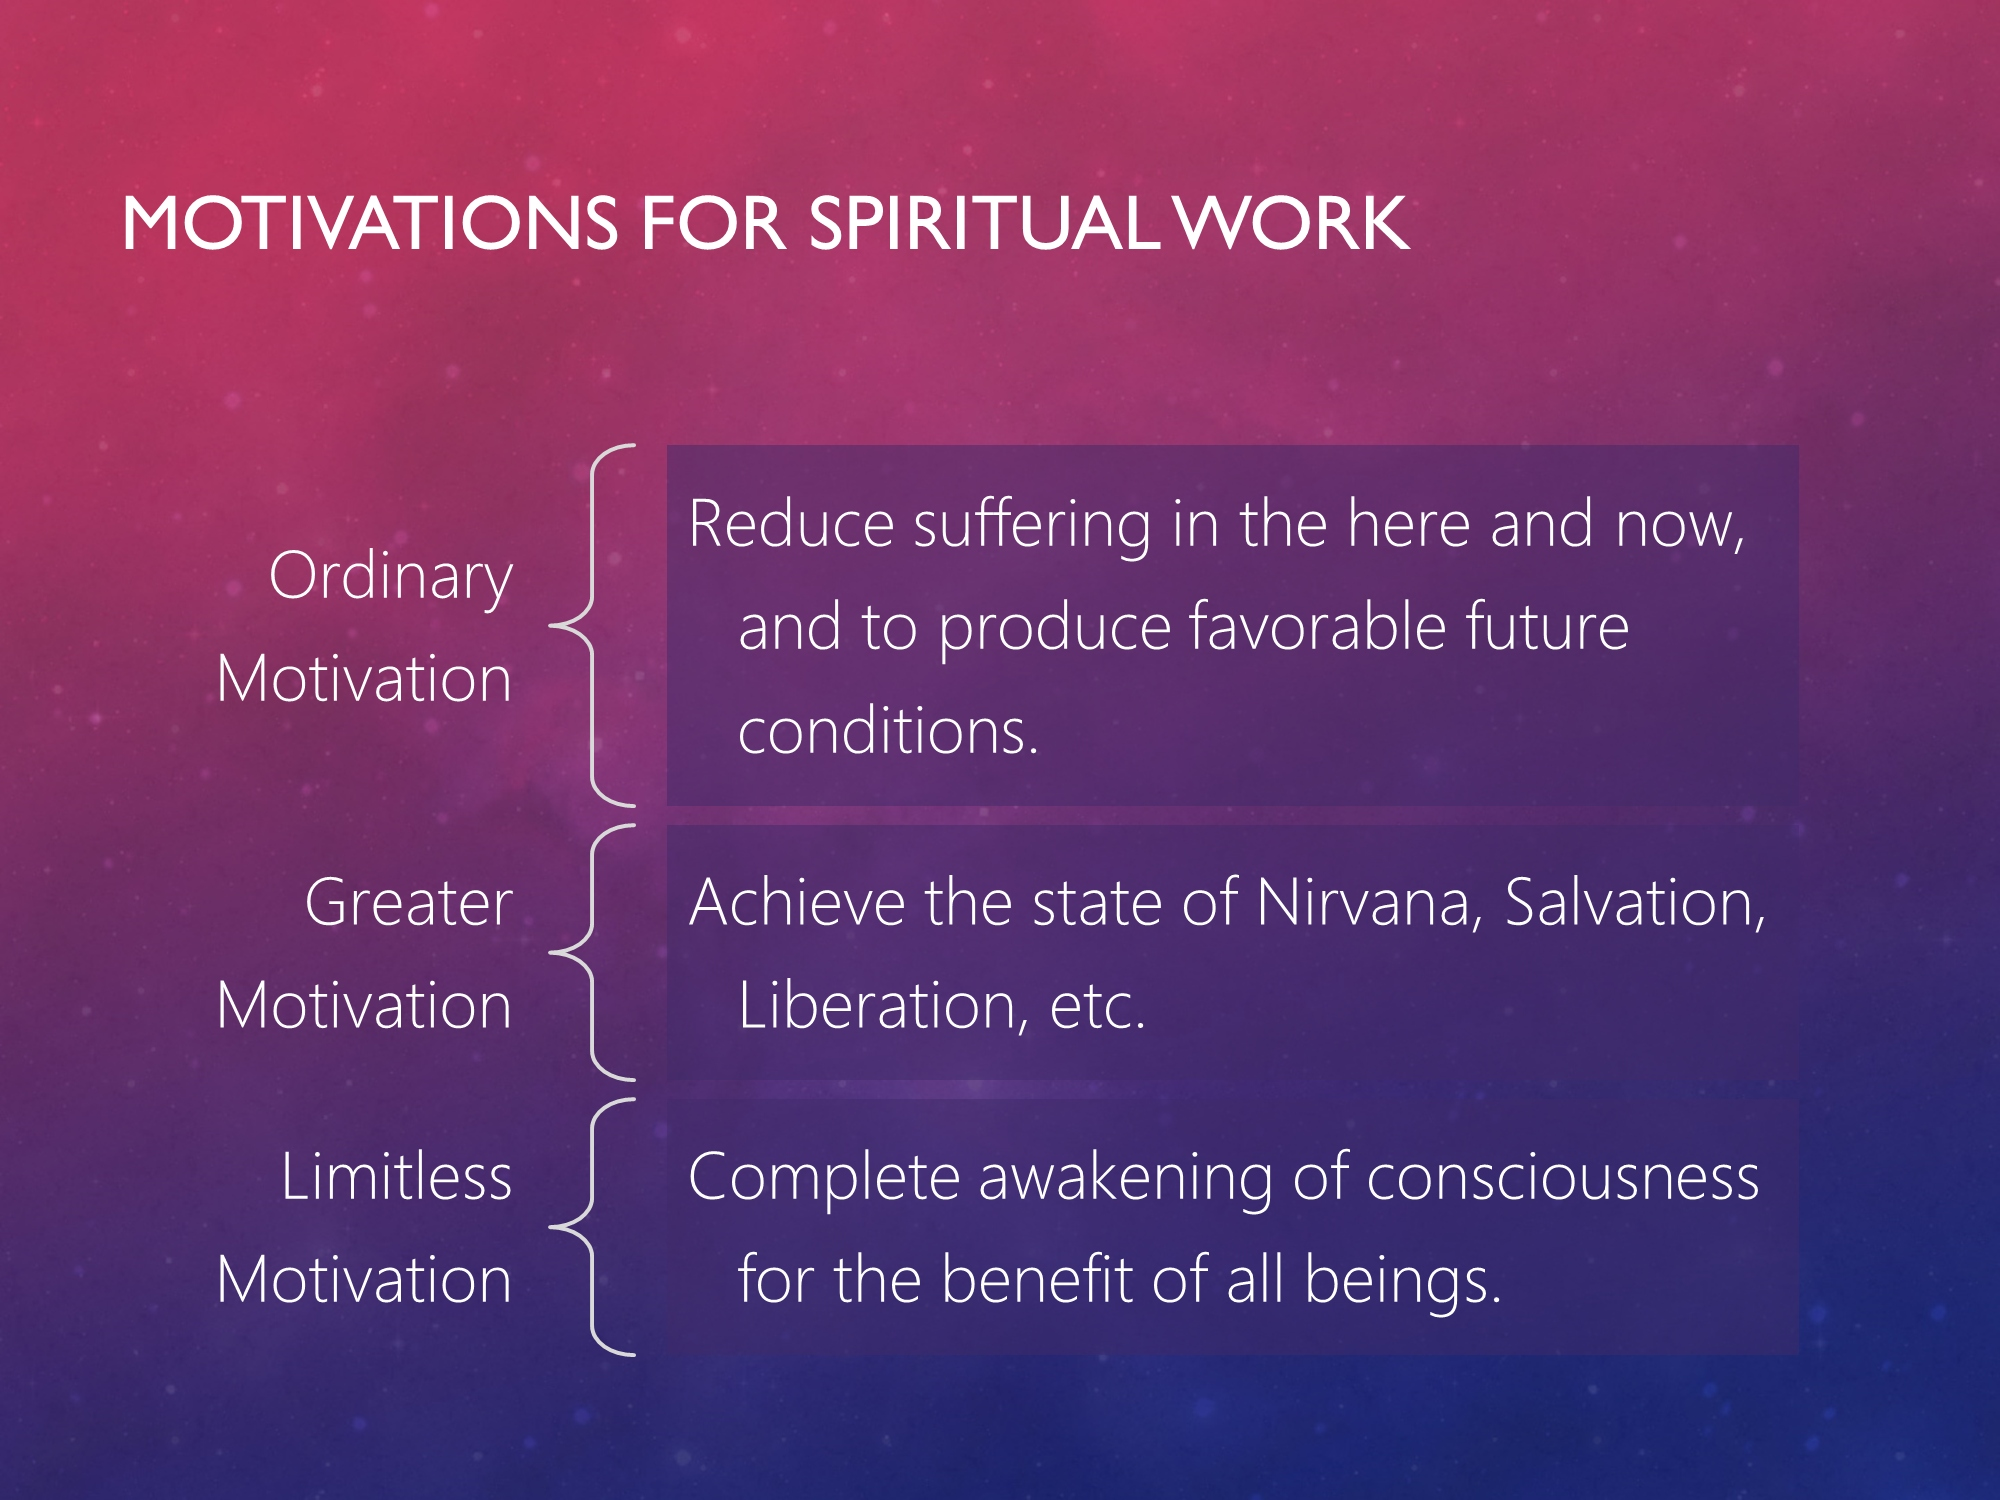 Three Levels of Motivation for Spiritual Work